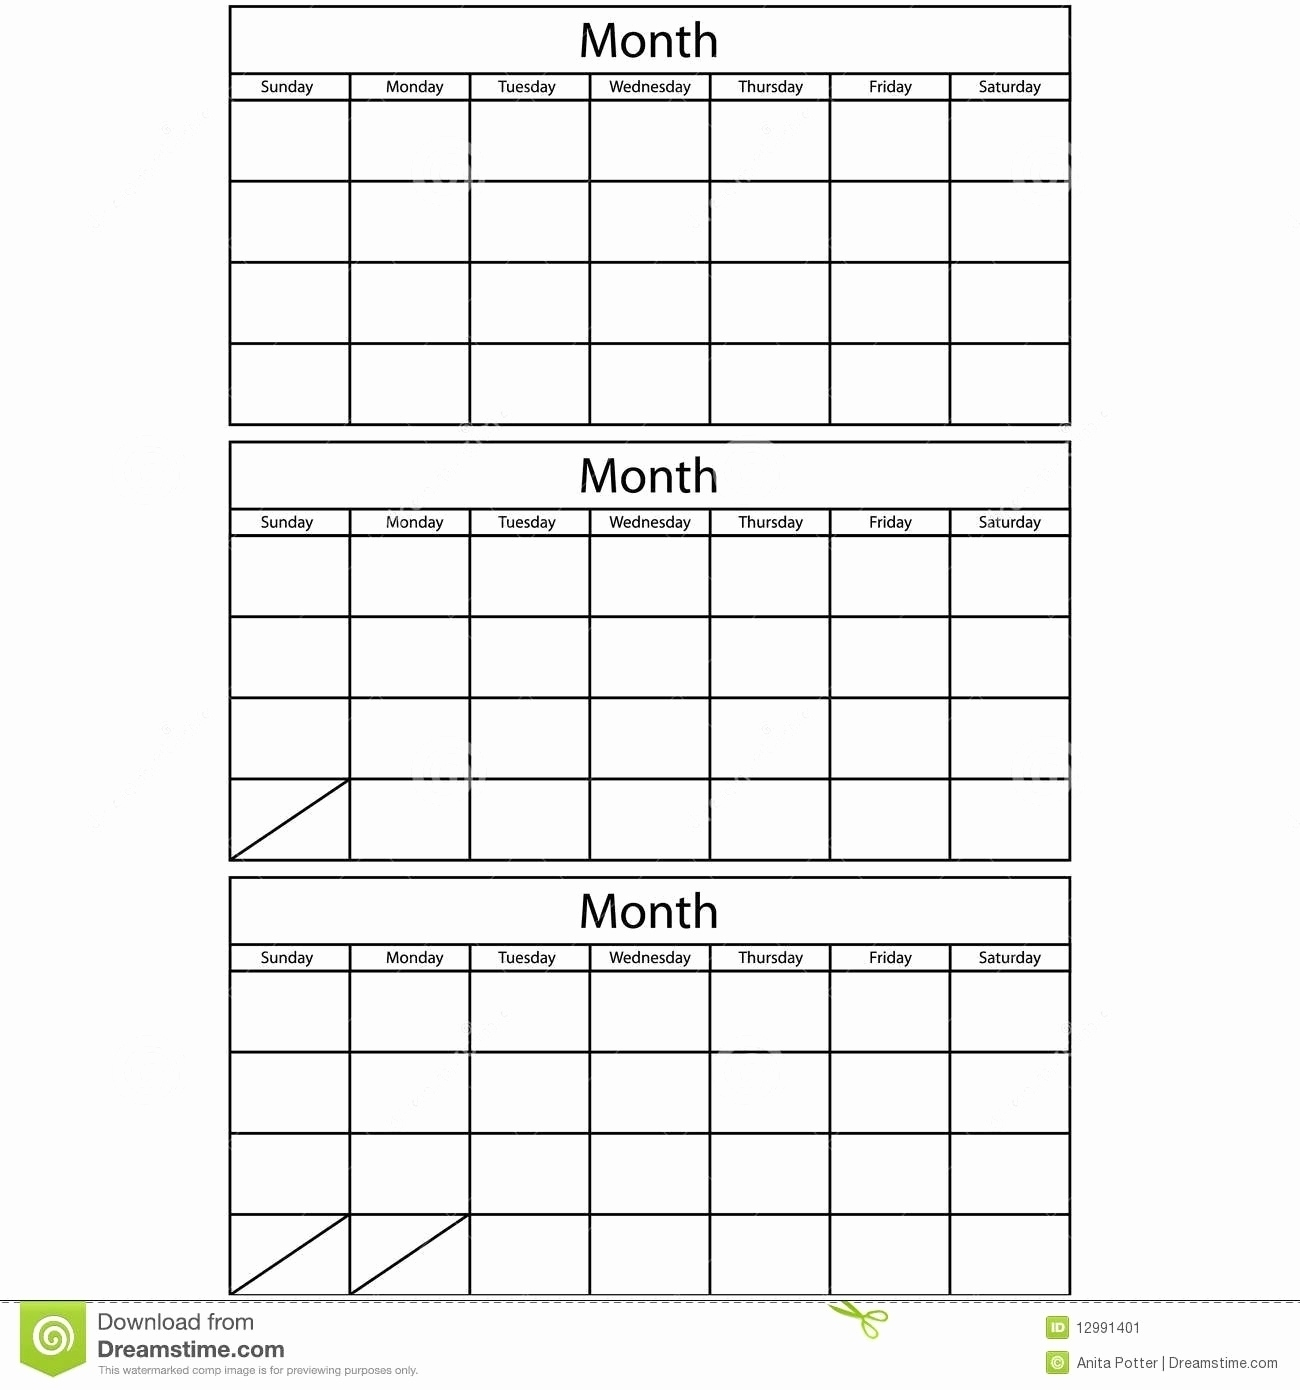 Free 3 Month Calendar Templates - Calendar Inspiration Design inside Free Editable Monthly Calendar Template